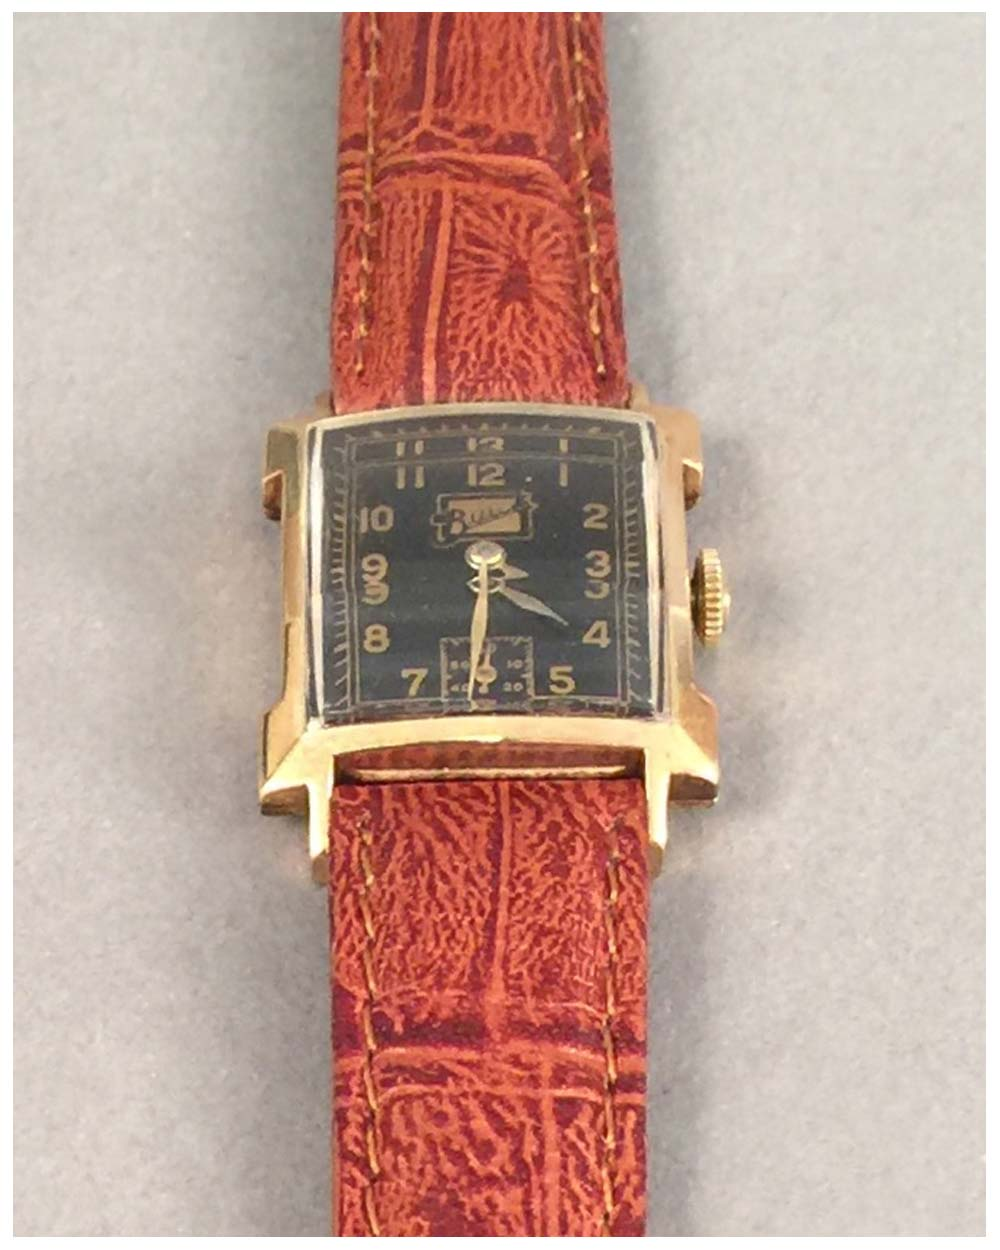 Buick Art Deco wrist watch